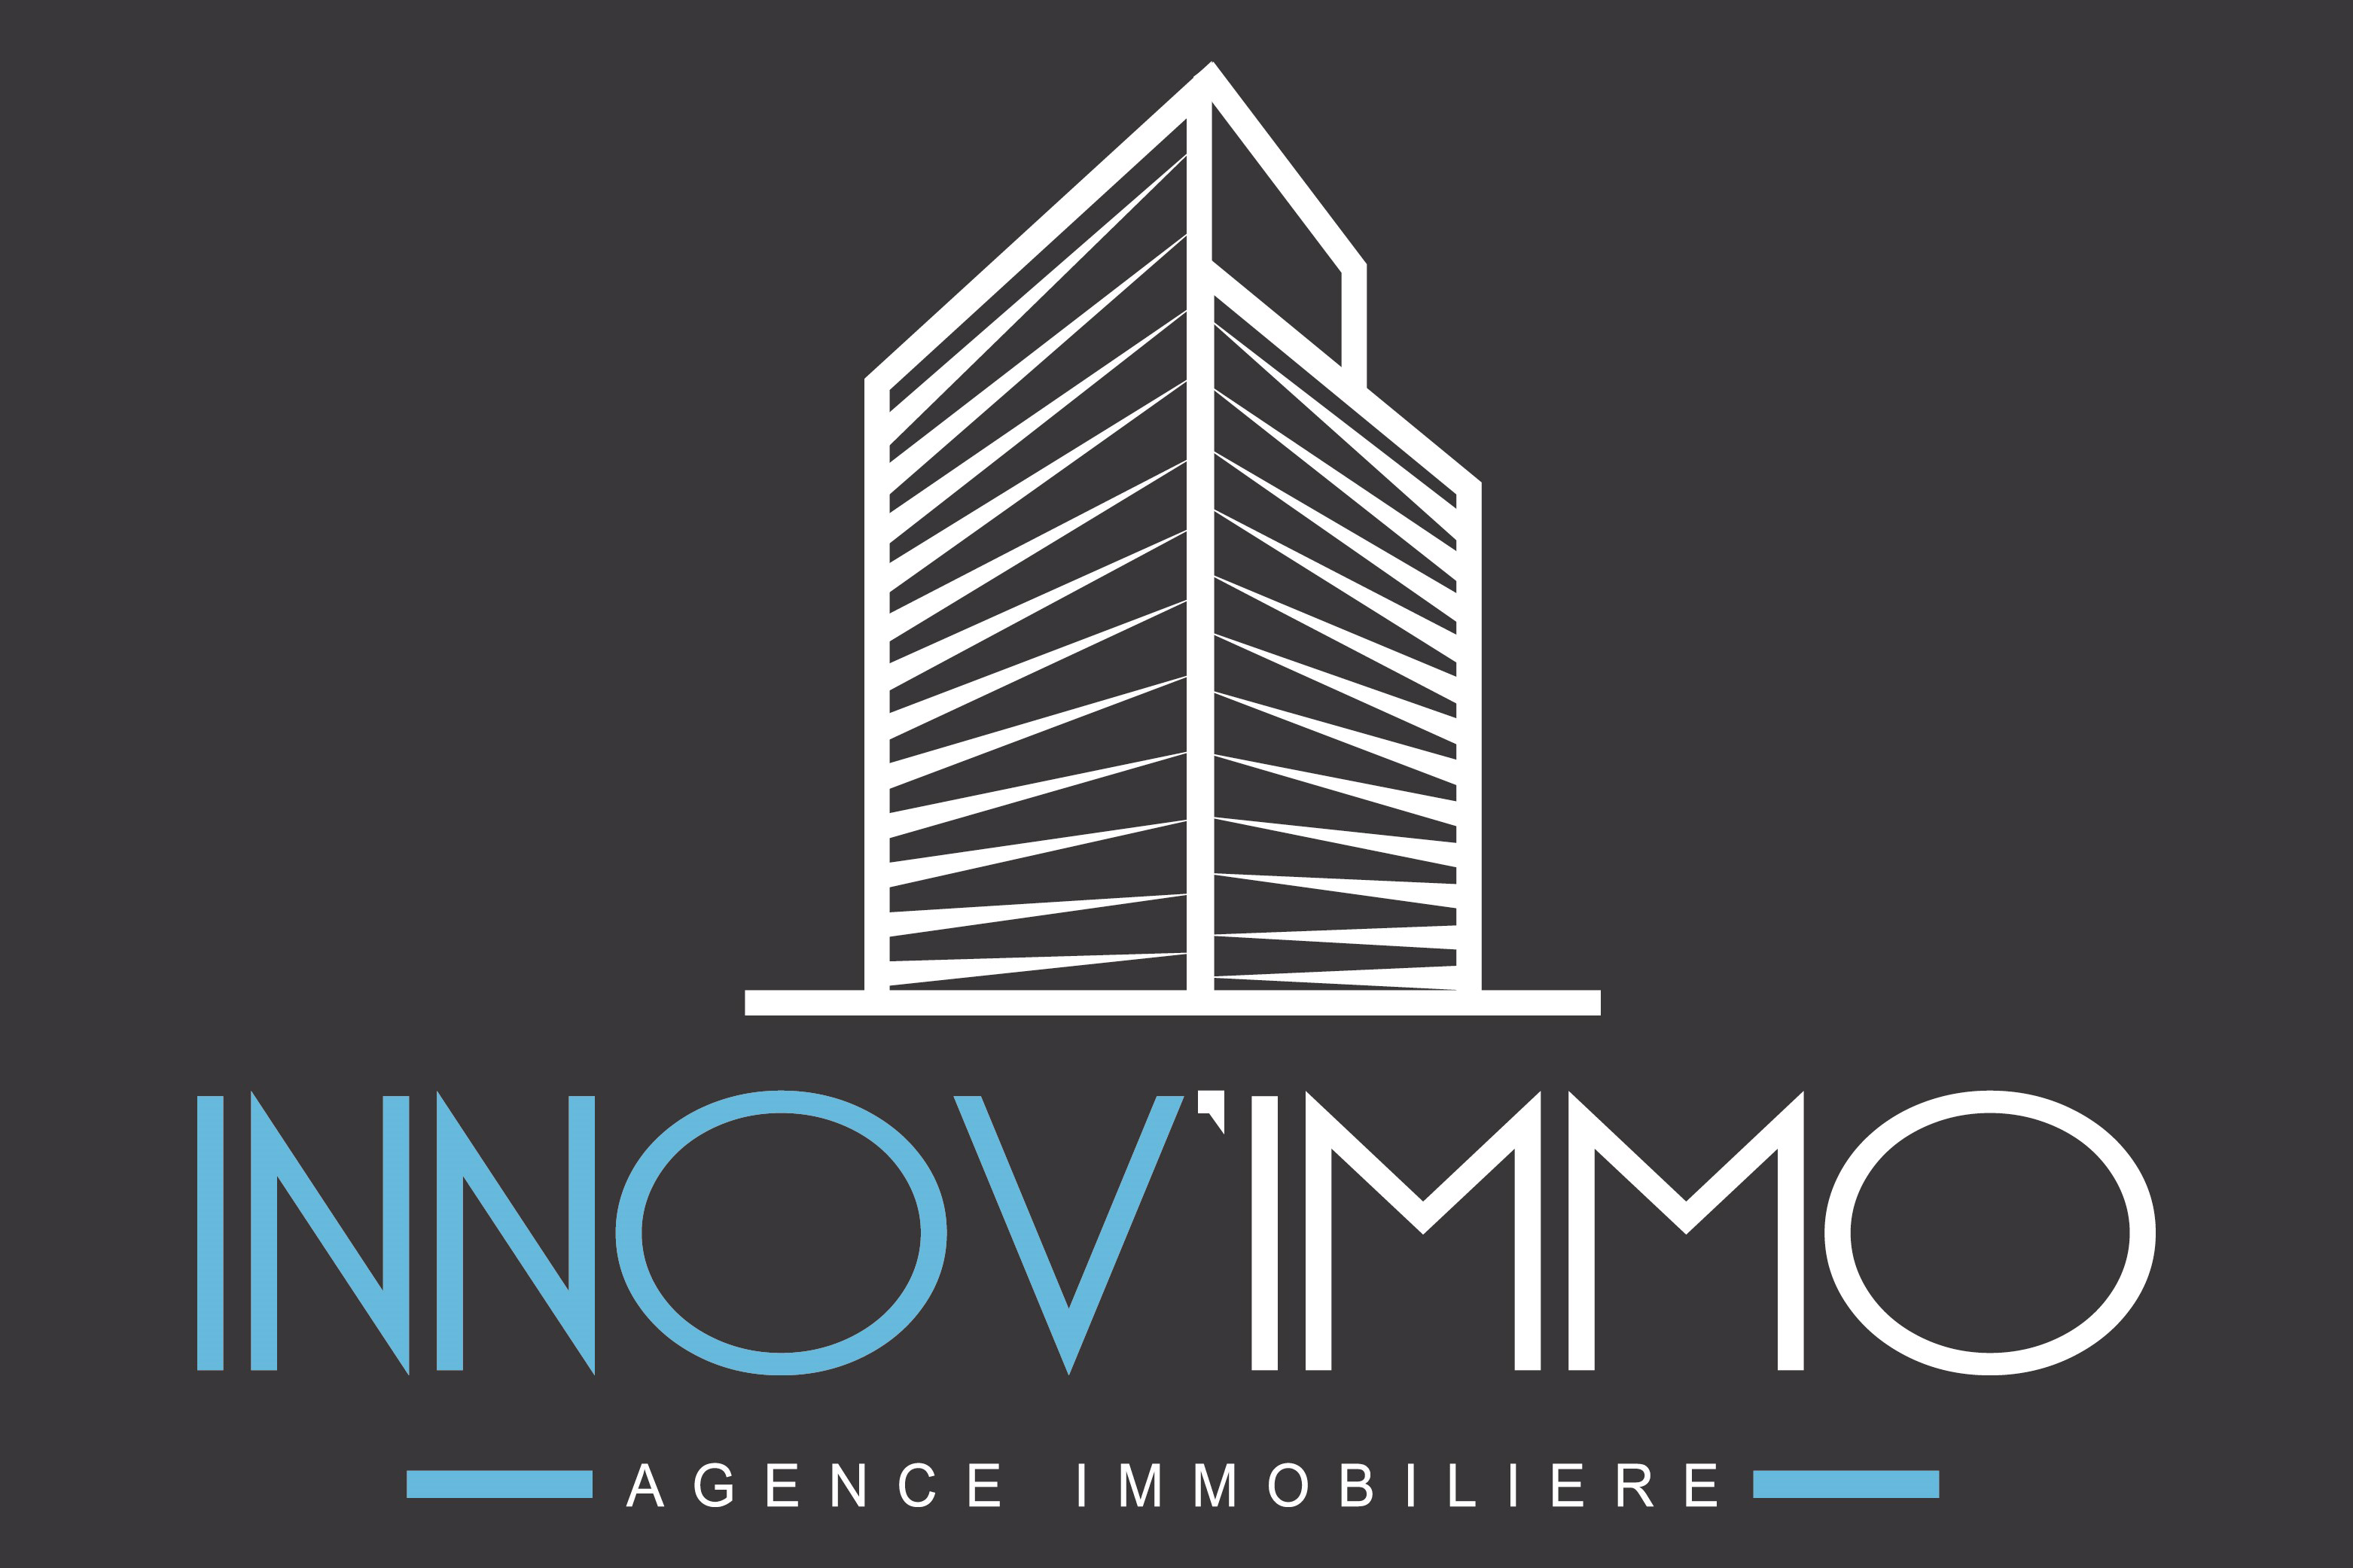 Innov'Immo agence immobilière Yenne (73170)